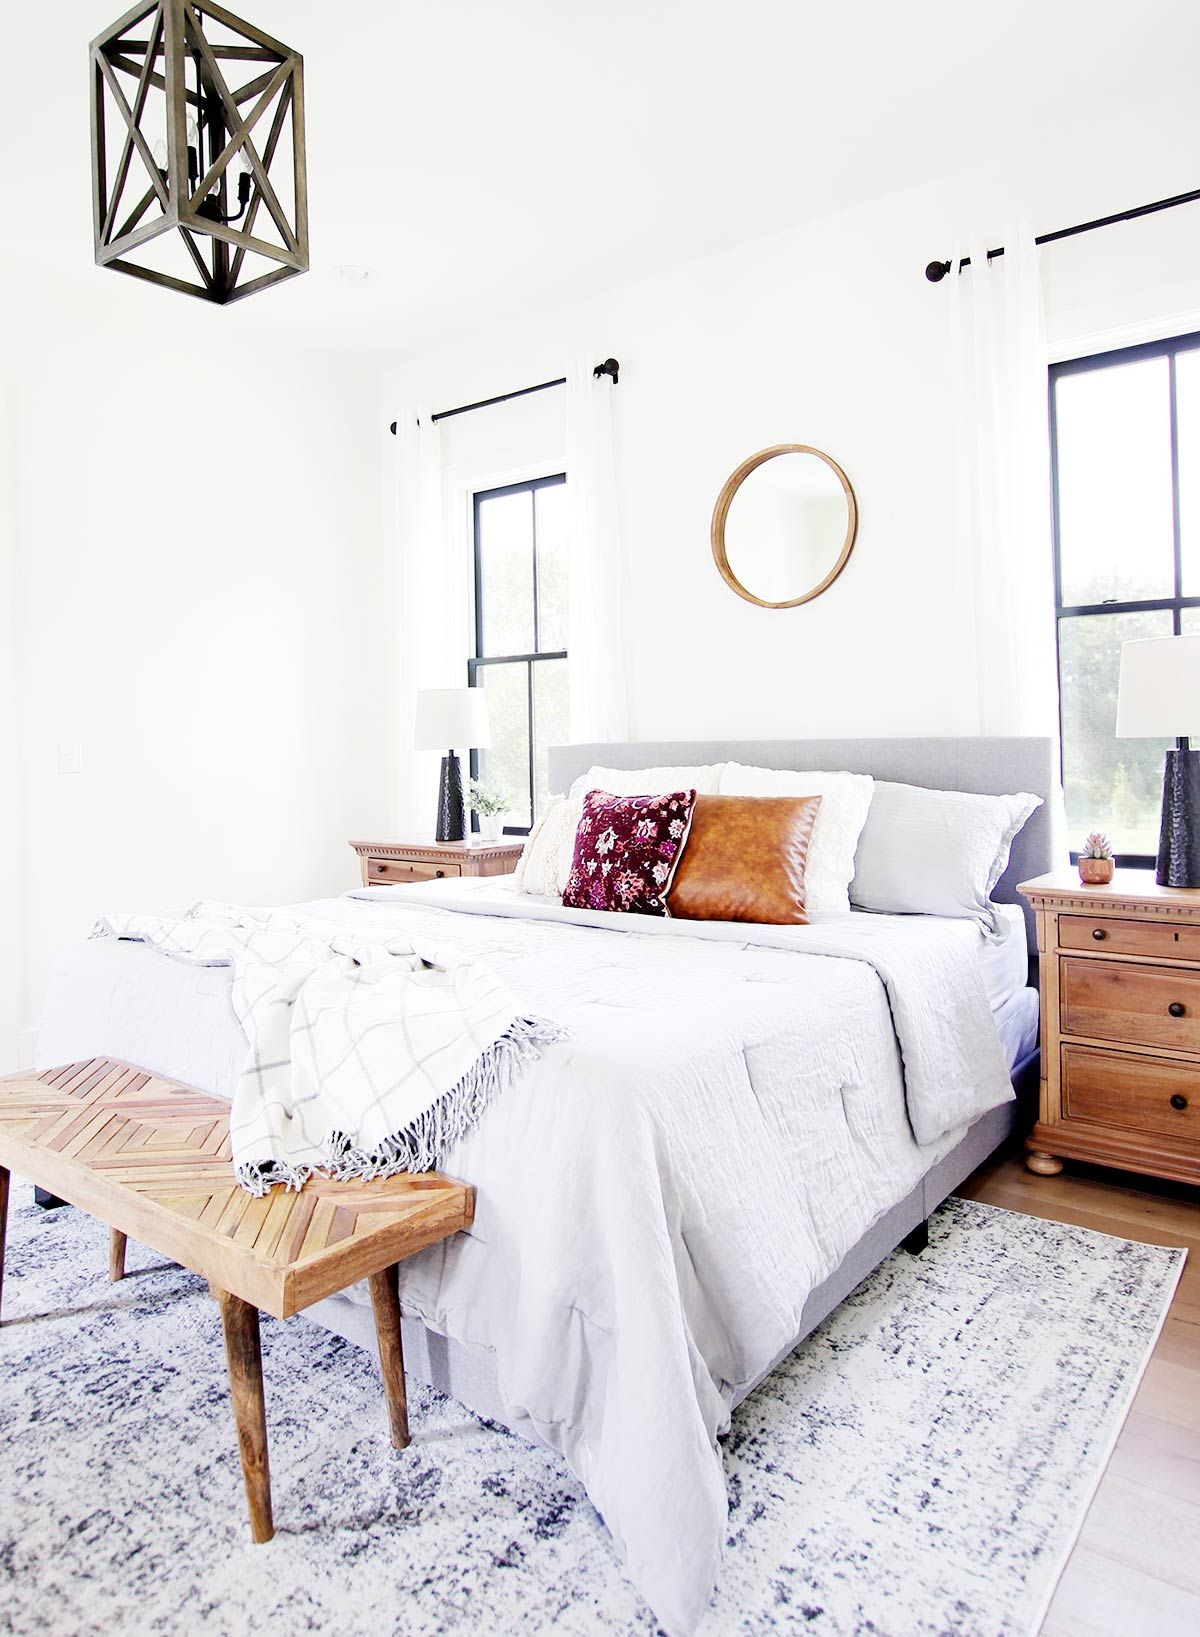 The Best Farmhouse Furniture To Decorate Your Bedroom In 2020 Home Decor Bedroom Airy Bedroom Bedroom Design